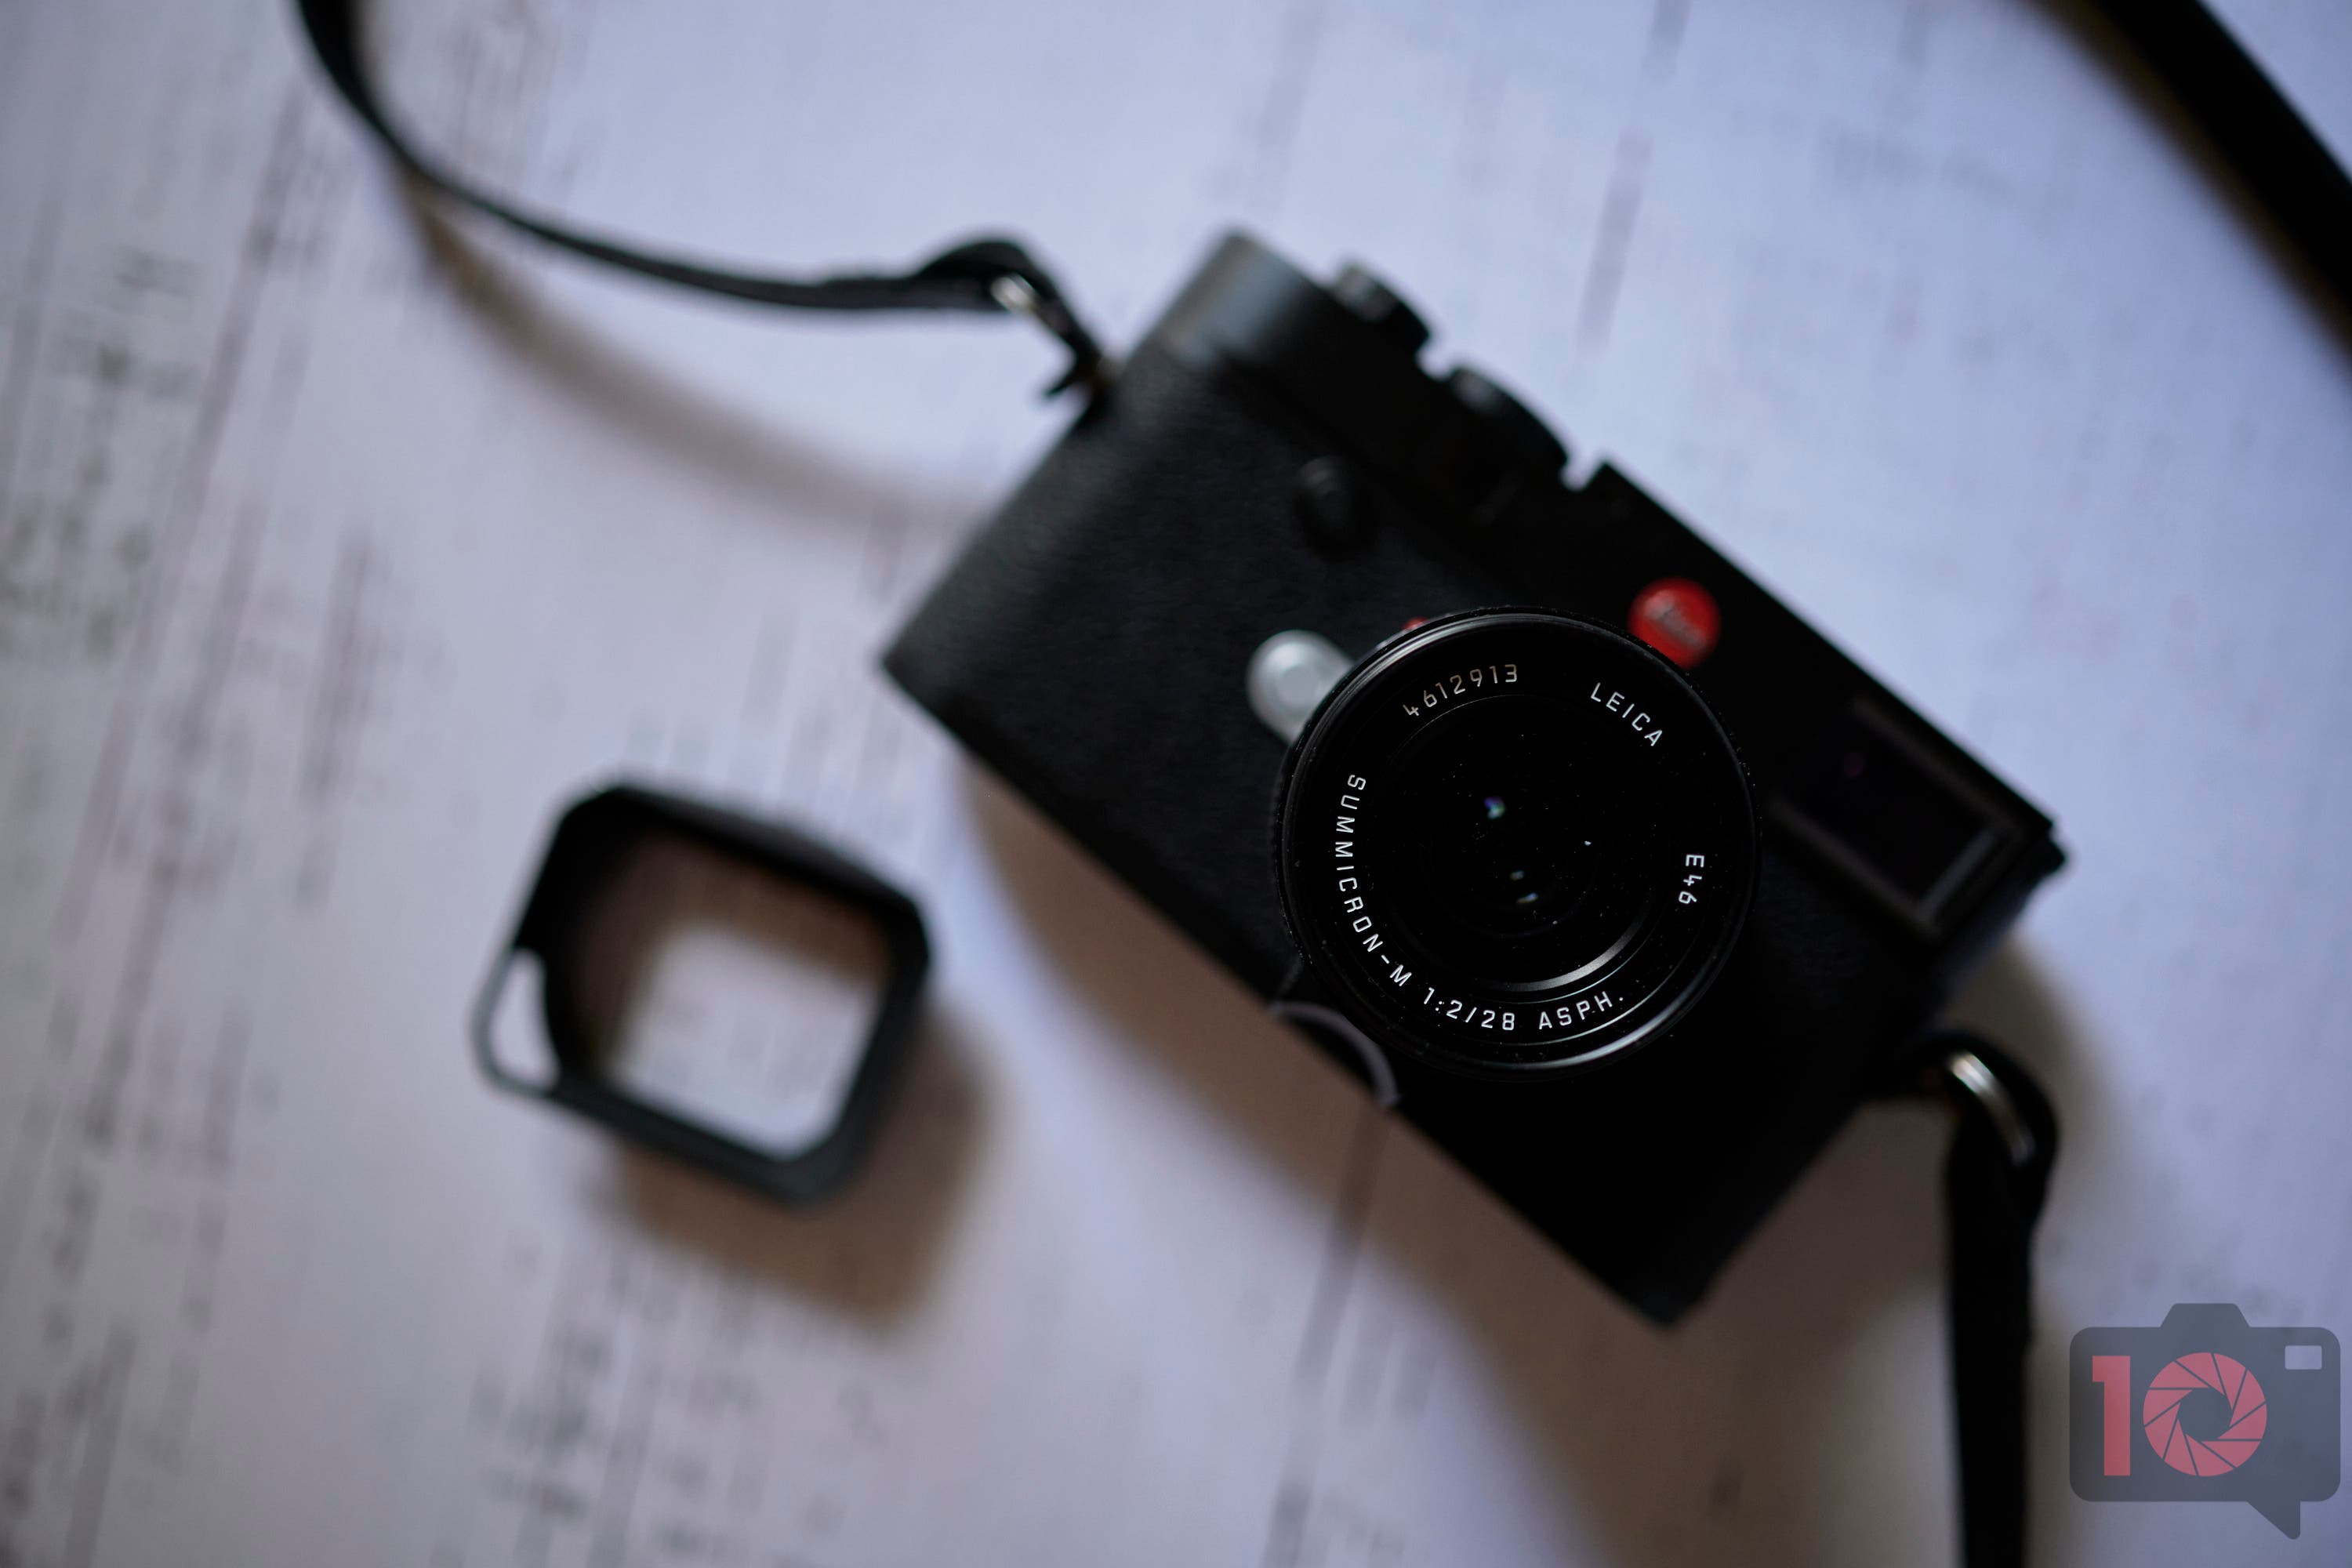 It's Not a Summilux: Leica 28mm F2 Summicron ASPH Review